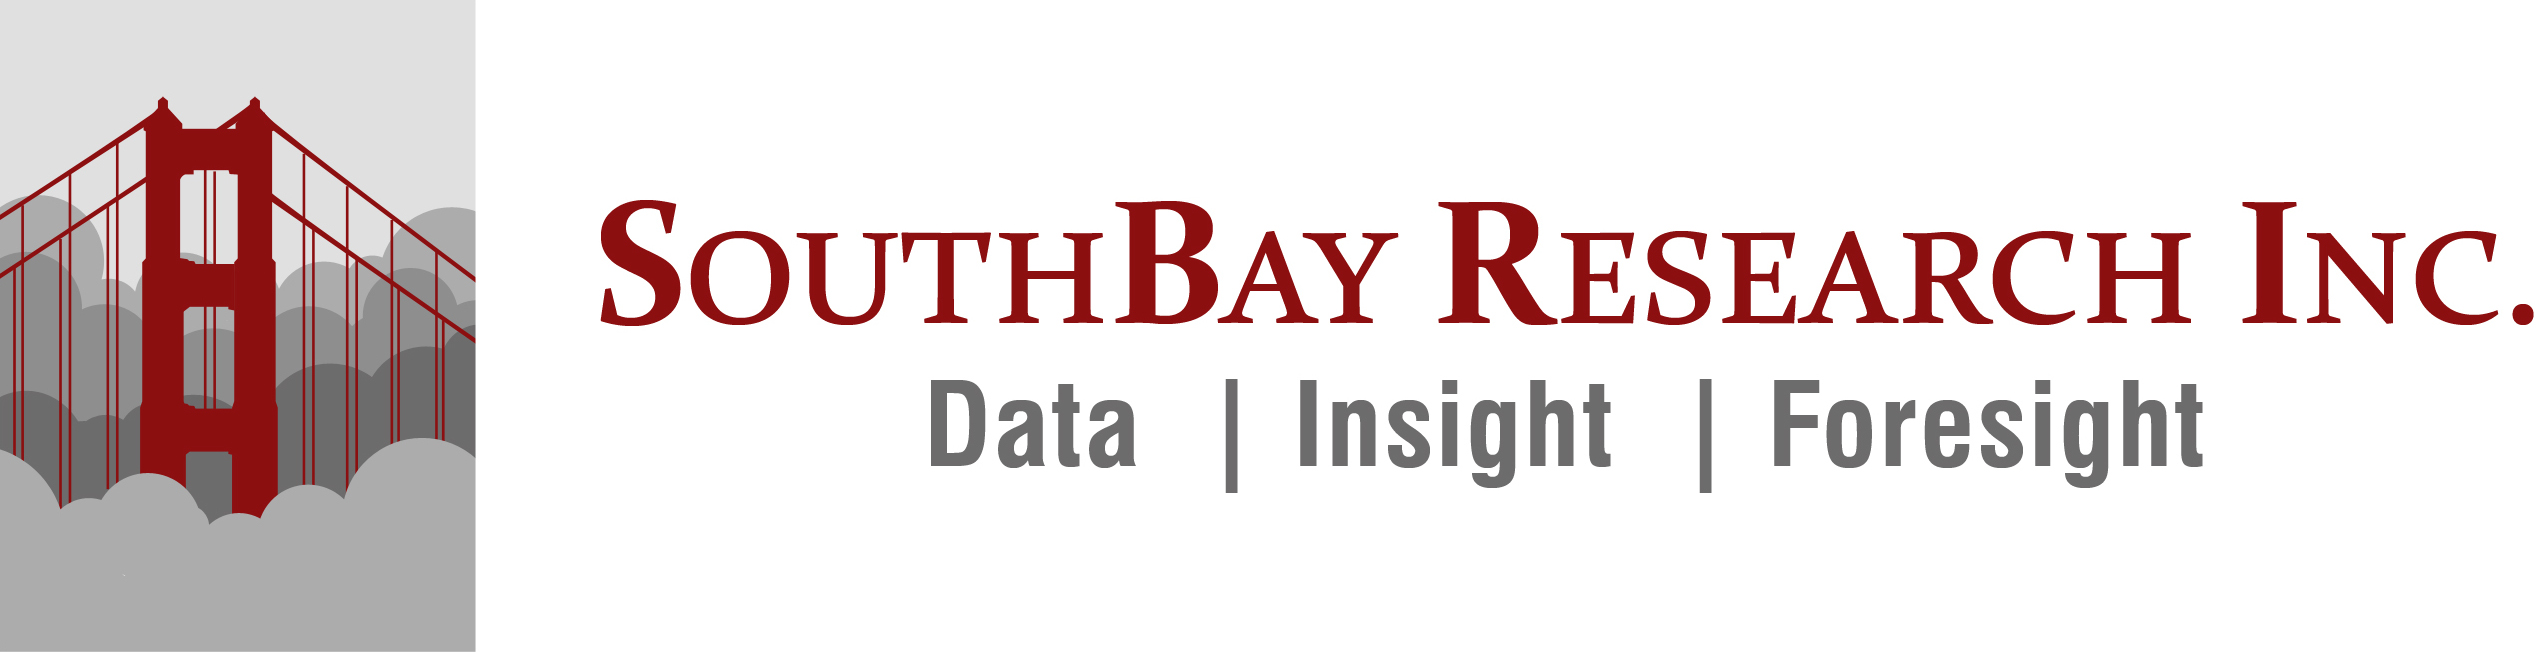 SouthBay Research Inc